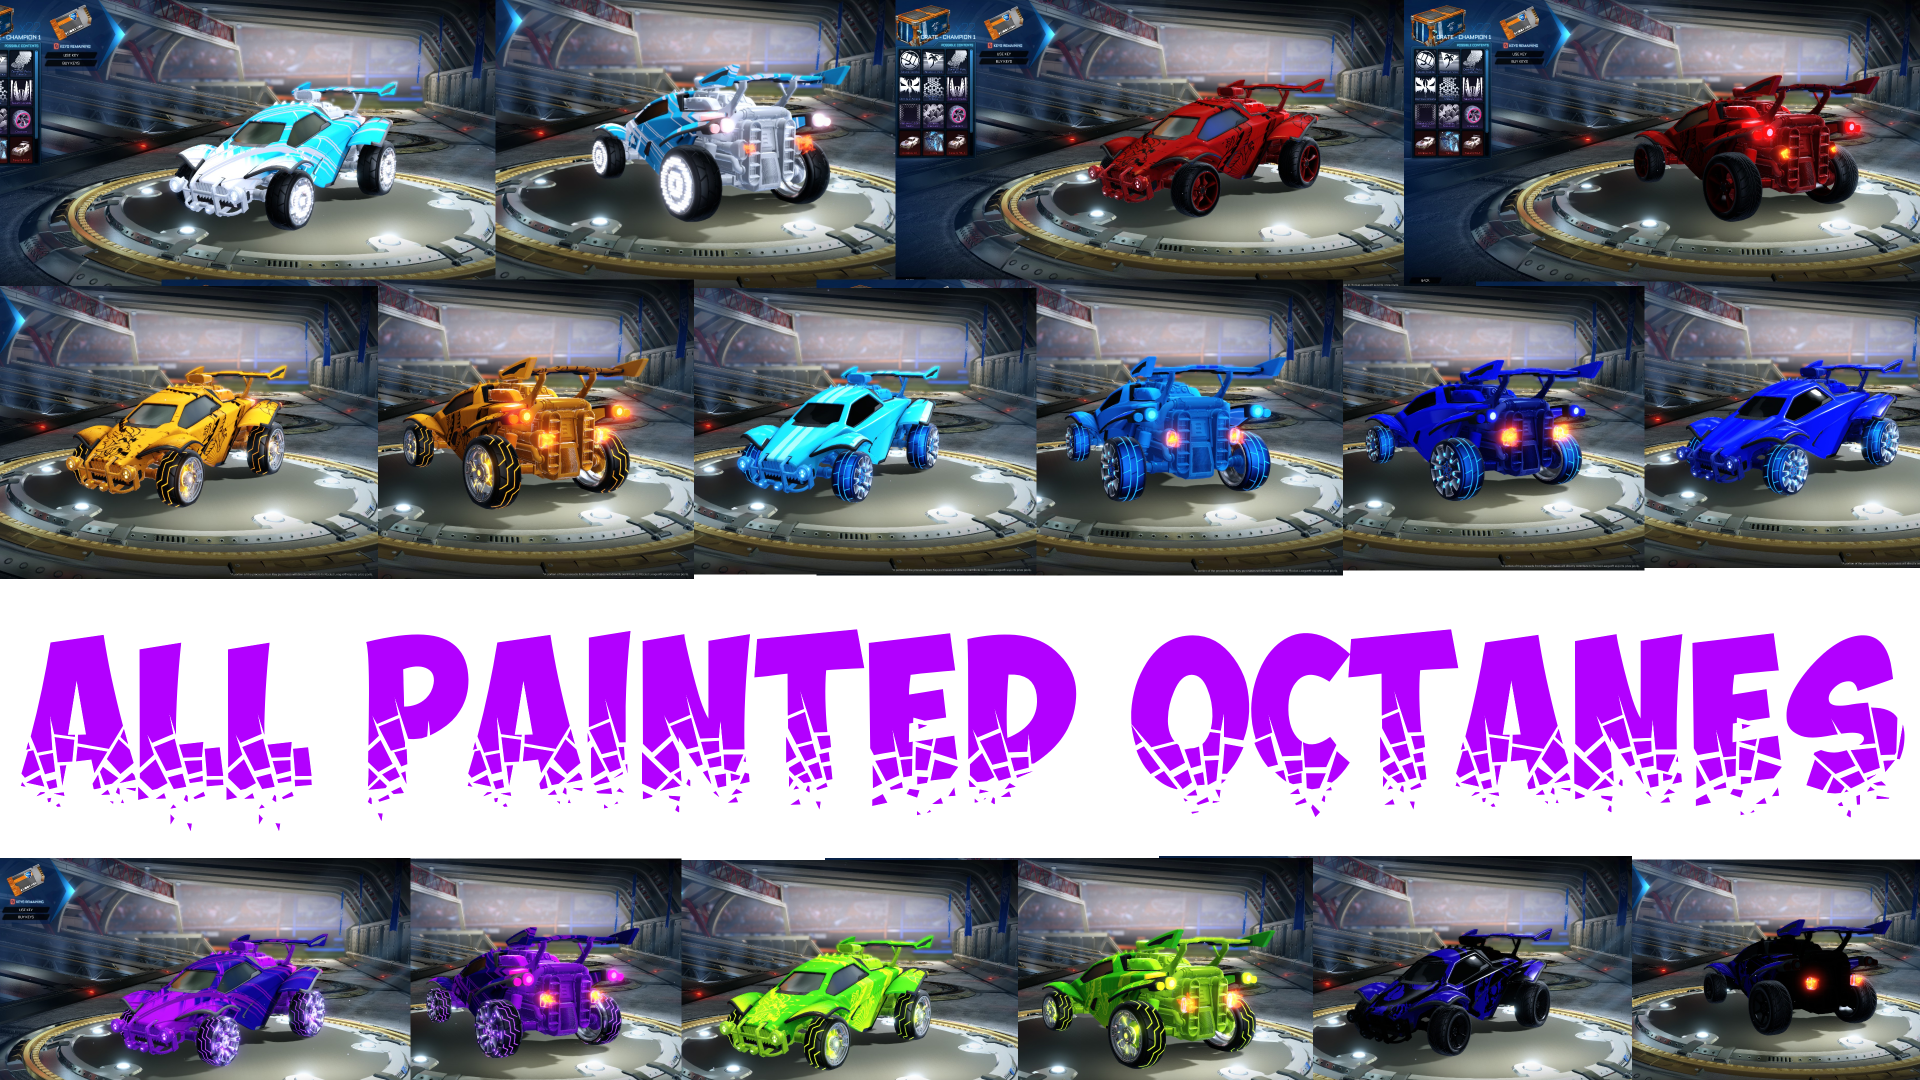 PAINTED OCTANES! ALL COLORS/PAINTS IN 1 MOD!